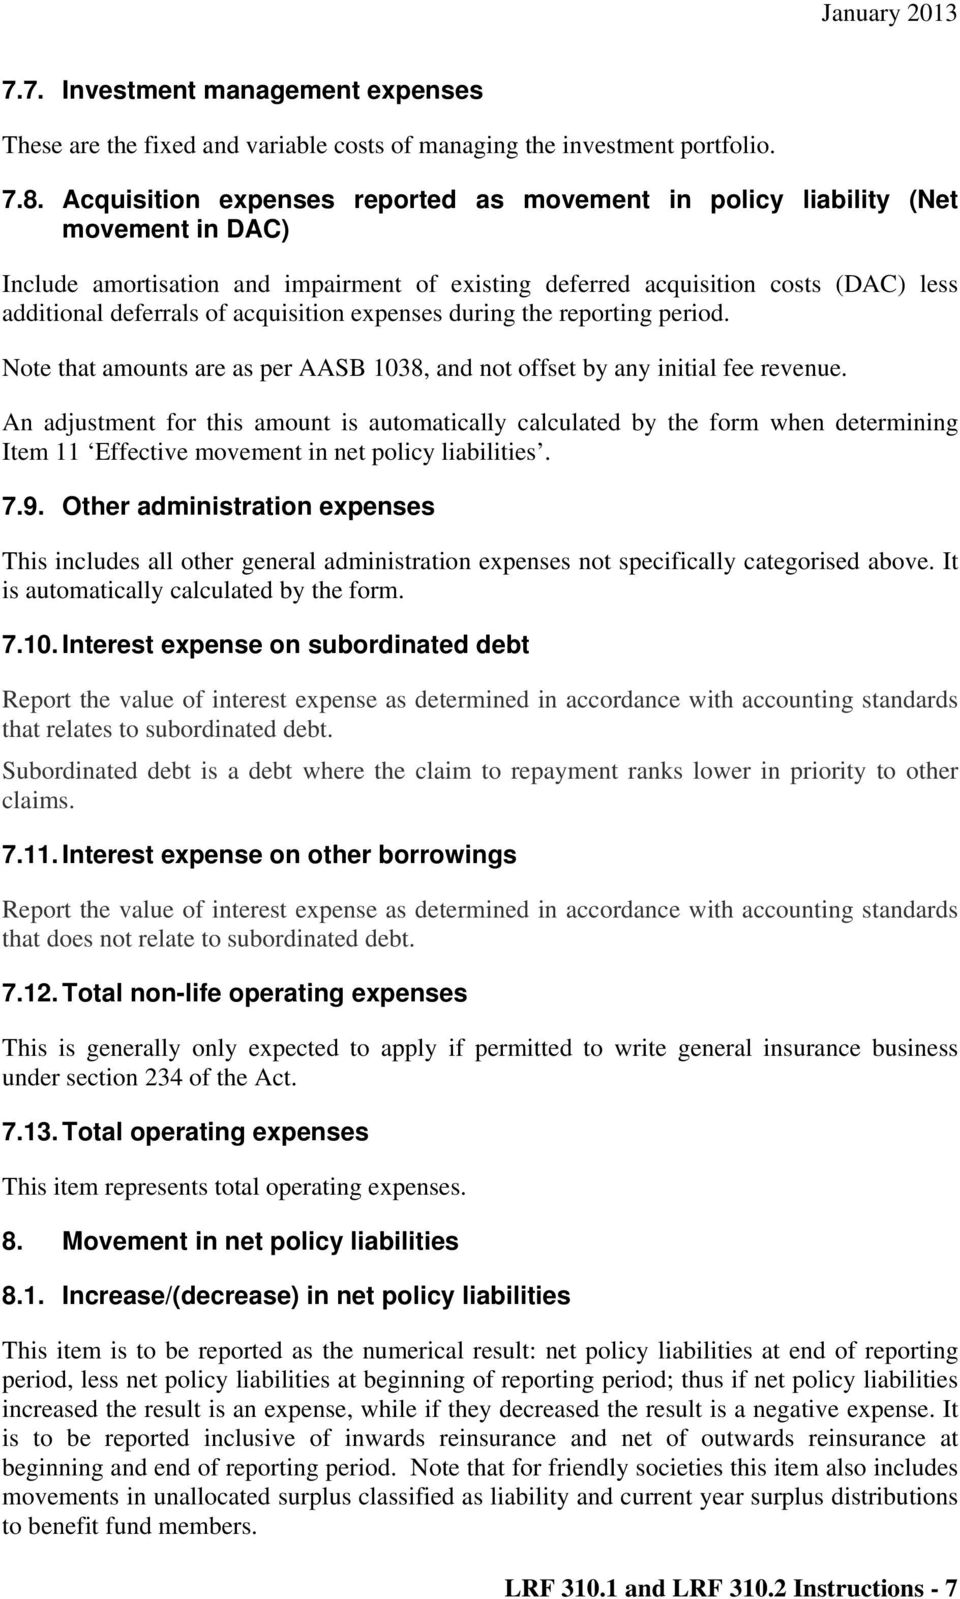 acquisition expenses during the reporting period. Note that amounts are as per AASB 1038, and not offset by any initial fee revenue.